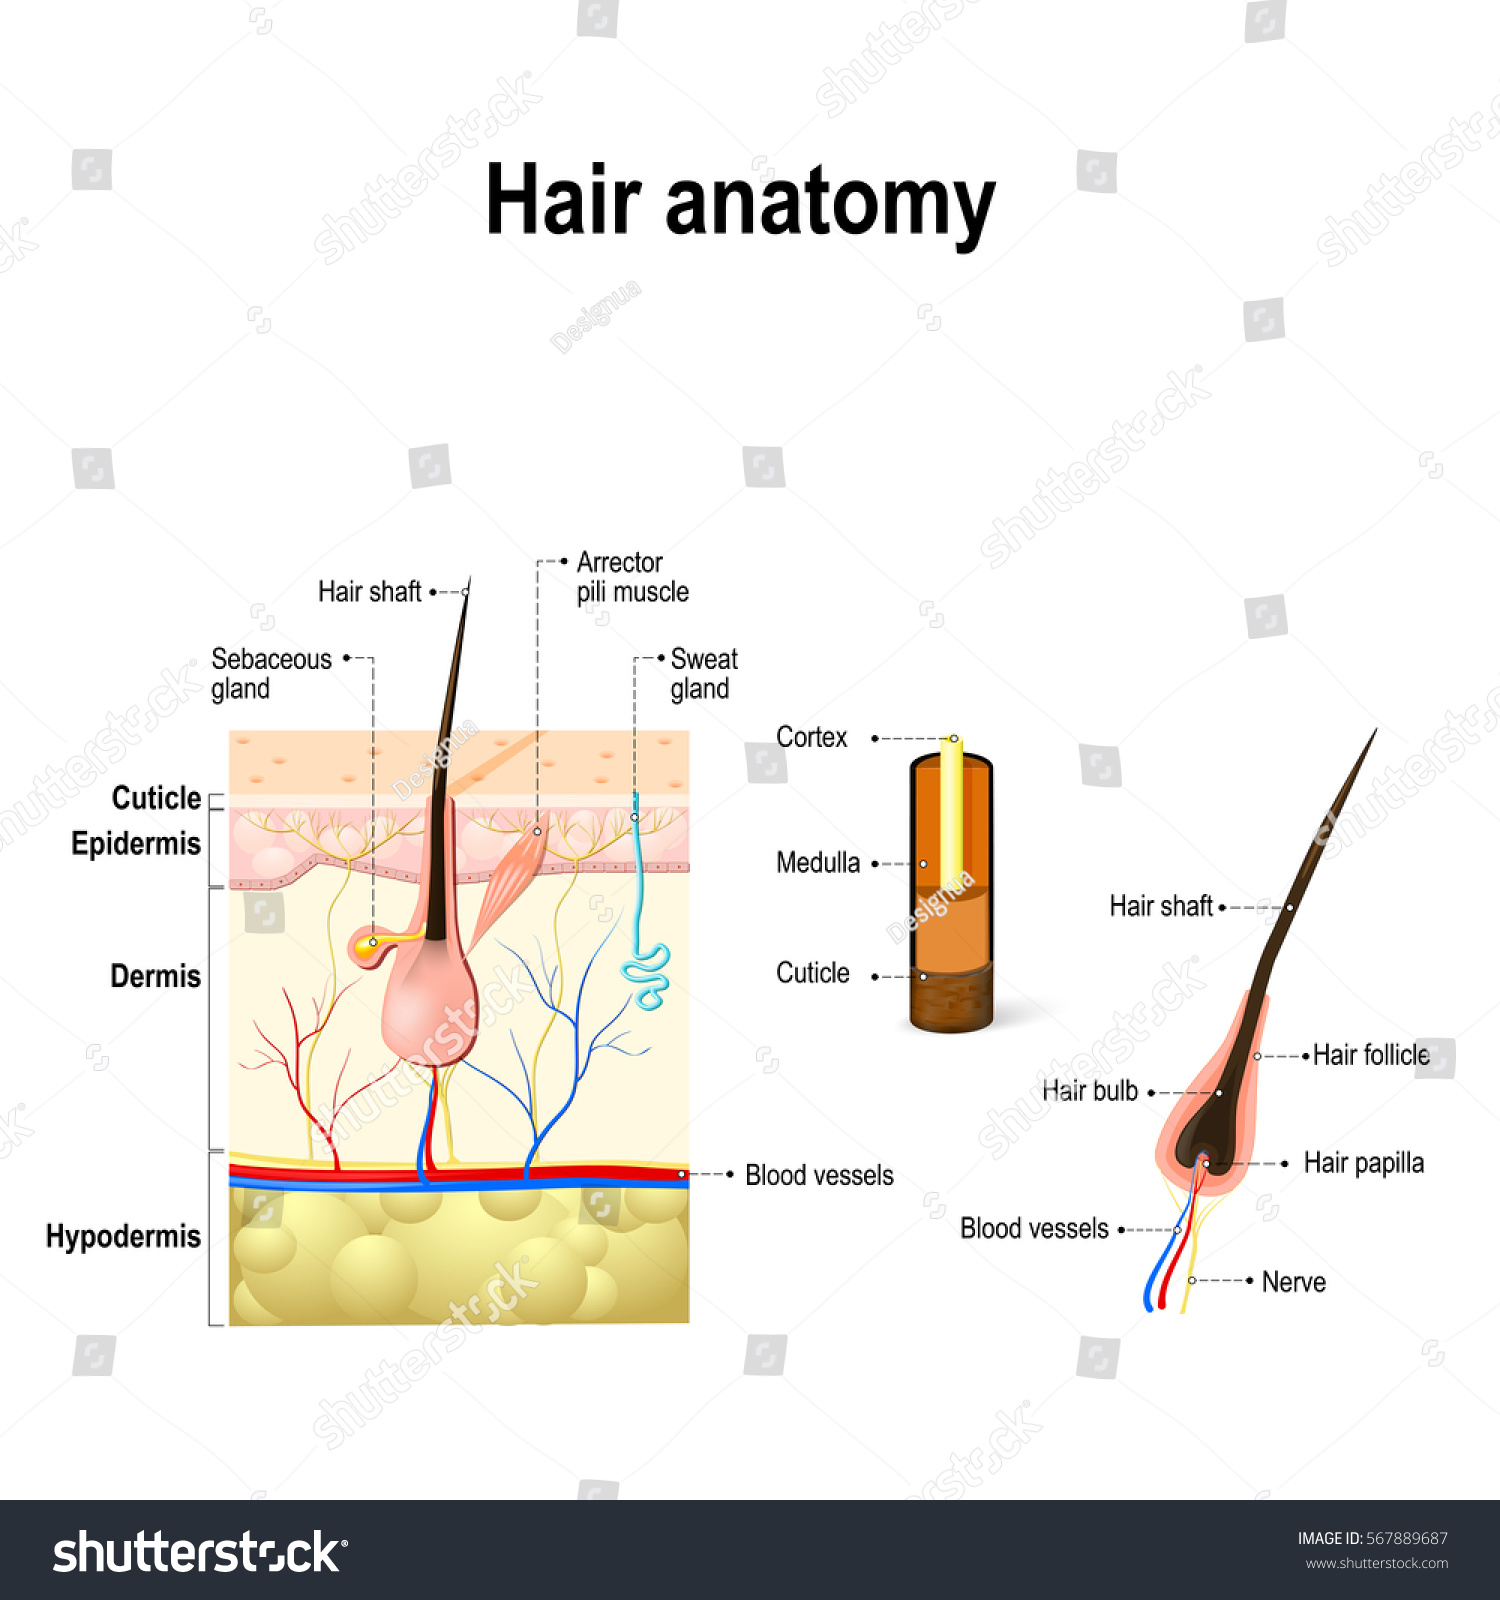 Human Hair Anatomy Diagram Hair Follicle Stock Illustration